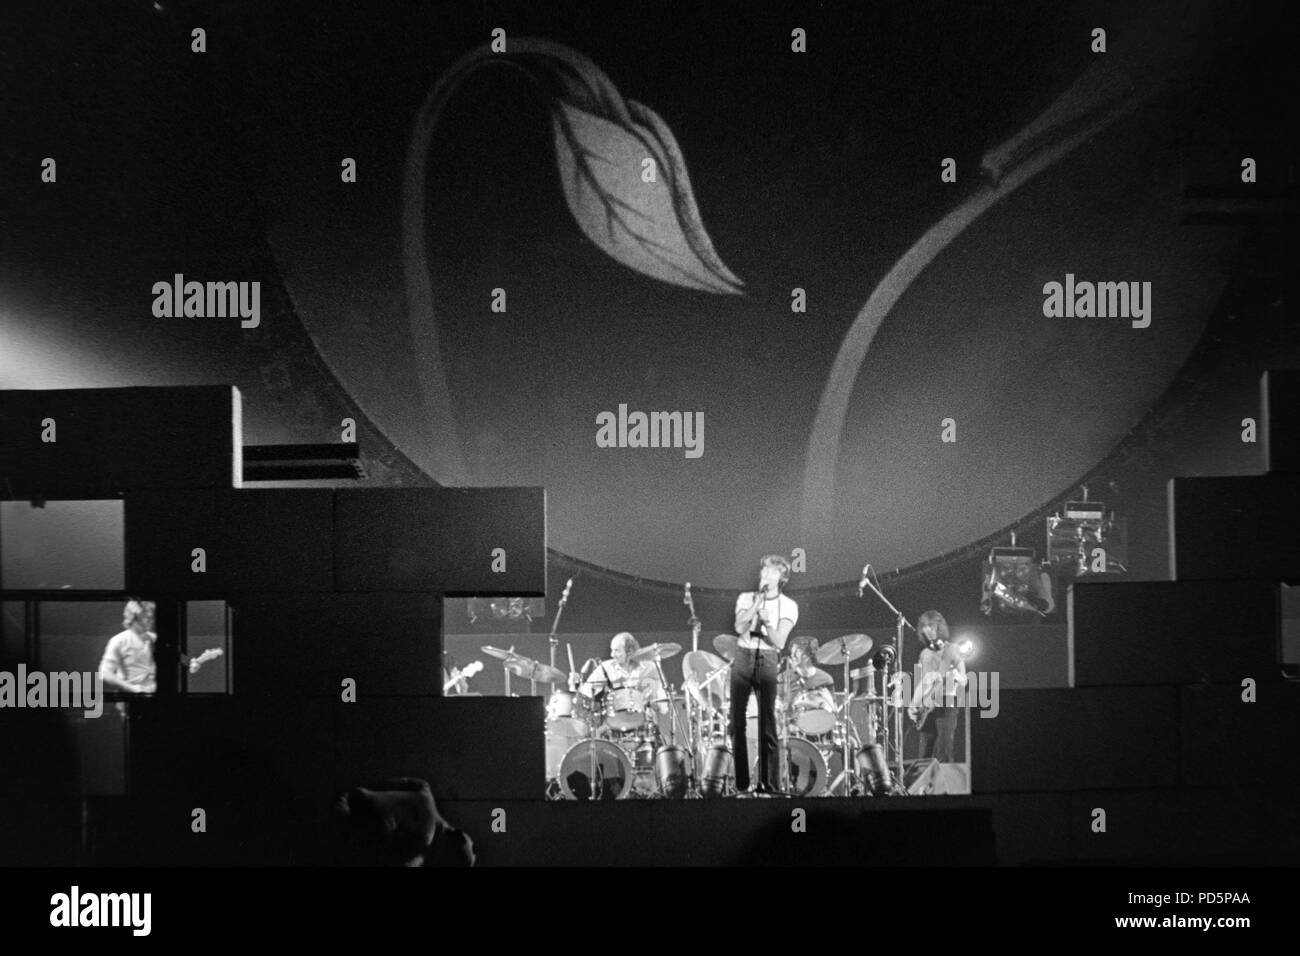 Dortmund, Germany, 20th. Feb.1981 -Singer, songwriter, bassist and composer Roger Waters (with microphone) of the british psychedelic rock band PINK FLOYD performing THE WALL concert at the Westfalenhalle in Dortmund/Germany (digital image from a b/w-film-negative) - Stock Image